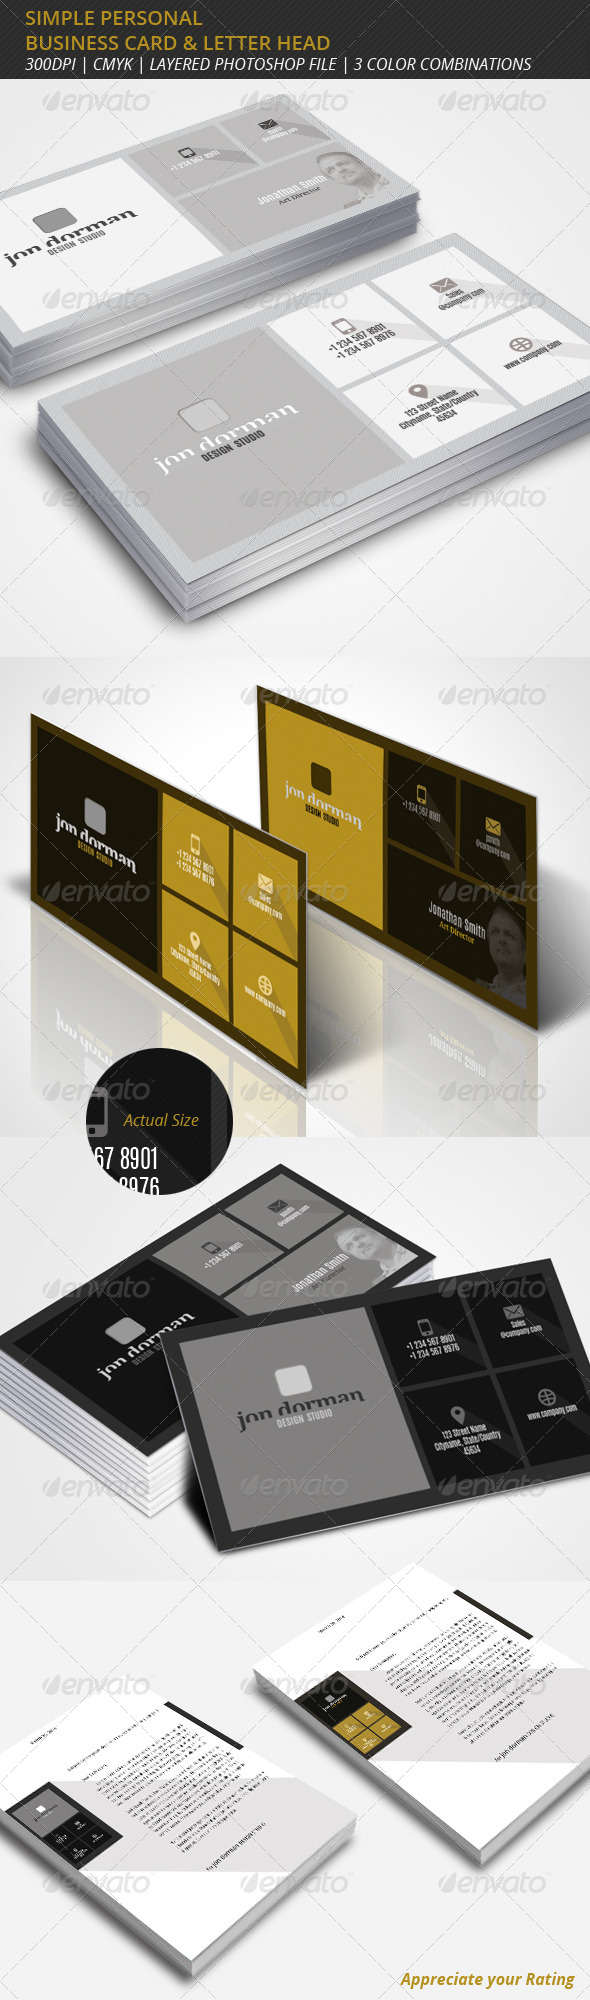 GraphicRiver Simple Professional Business Card & Letterhead 6949825